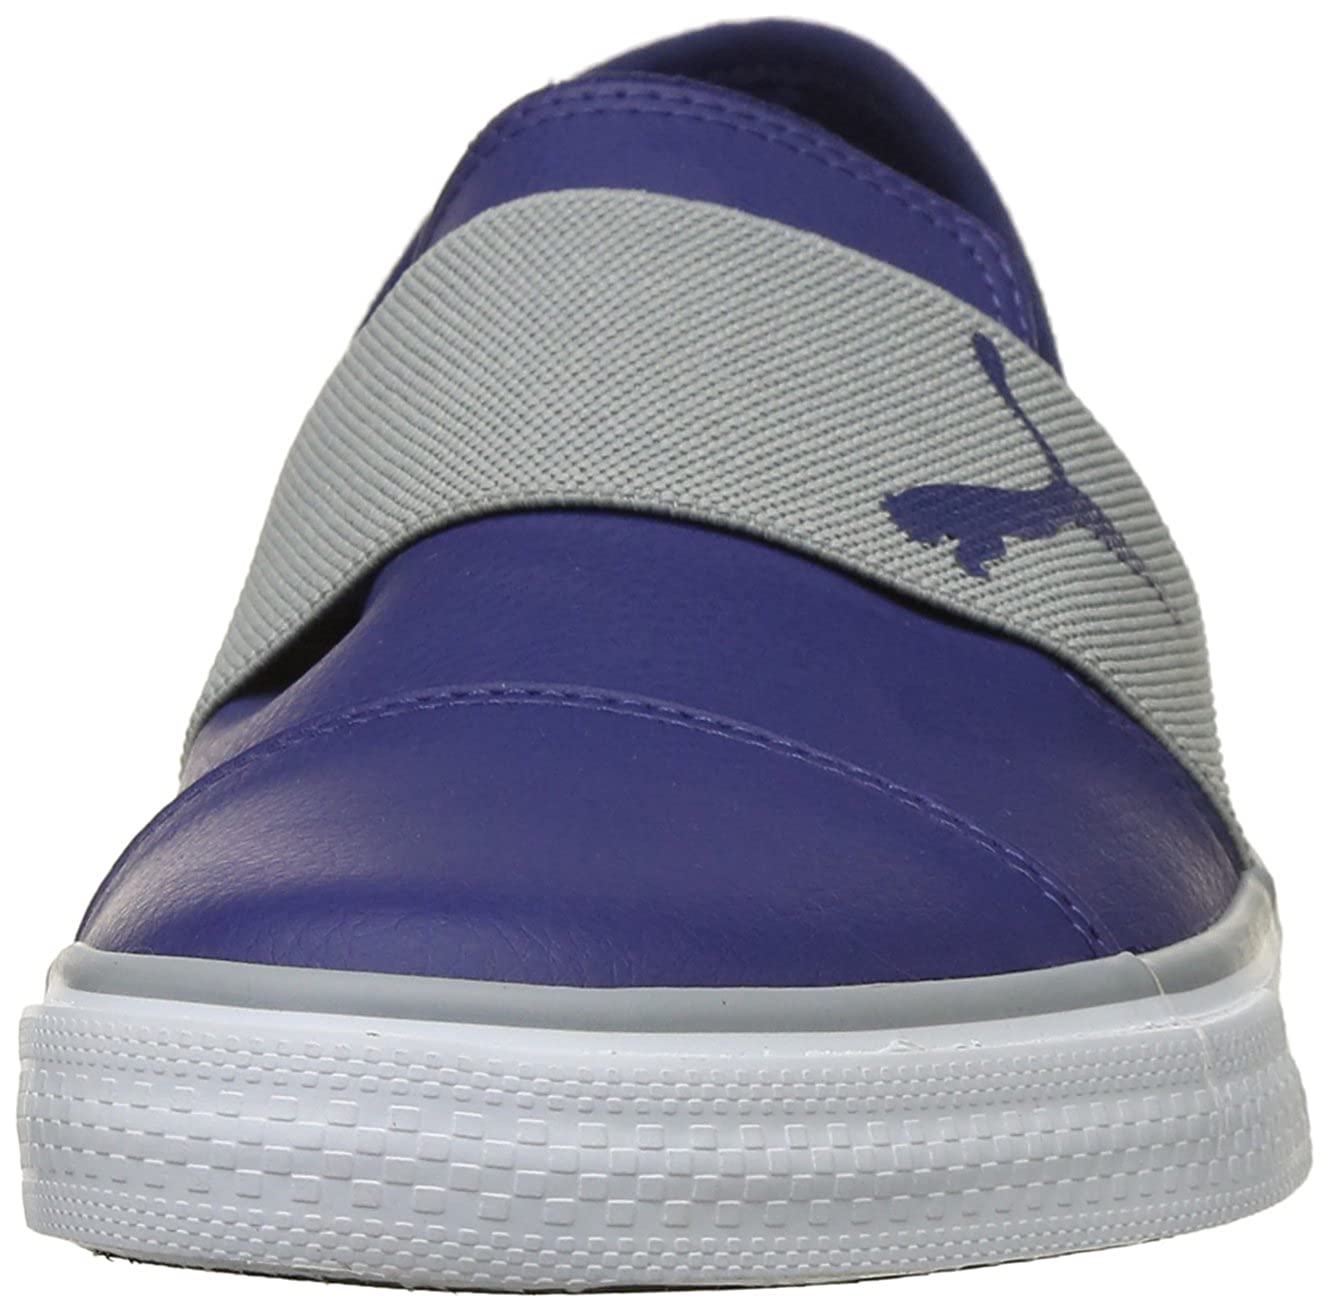 14f6d993f294 Puma Men s Alpha Slip On Sneakers  Buy Online at Low Prices in India -  Amazon.in